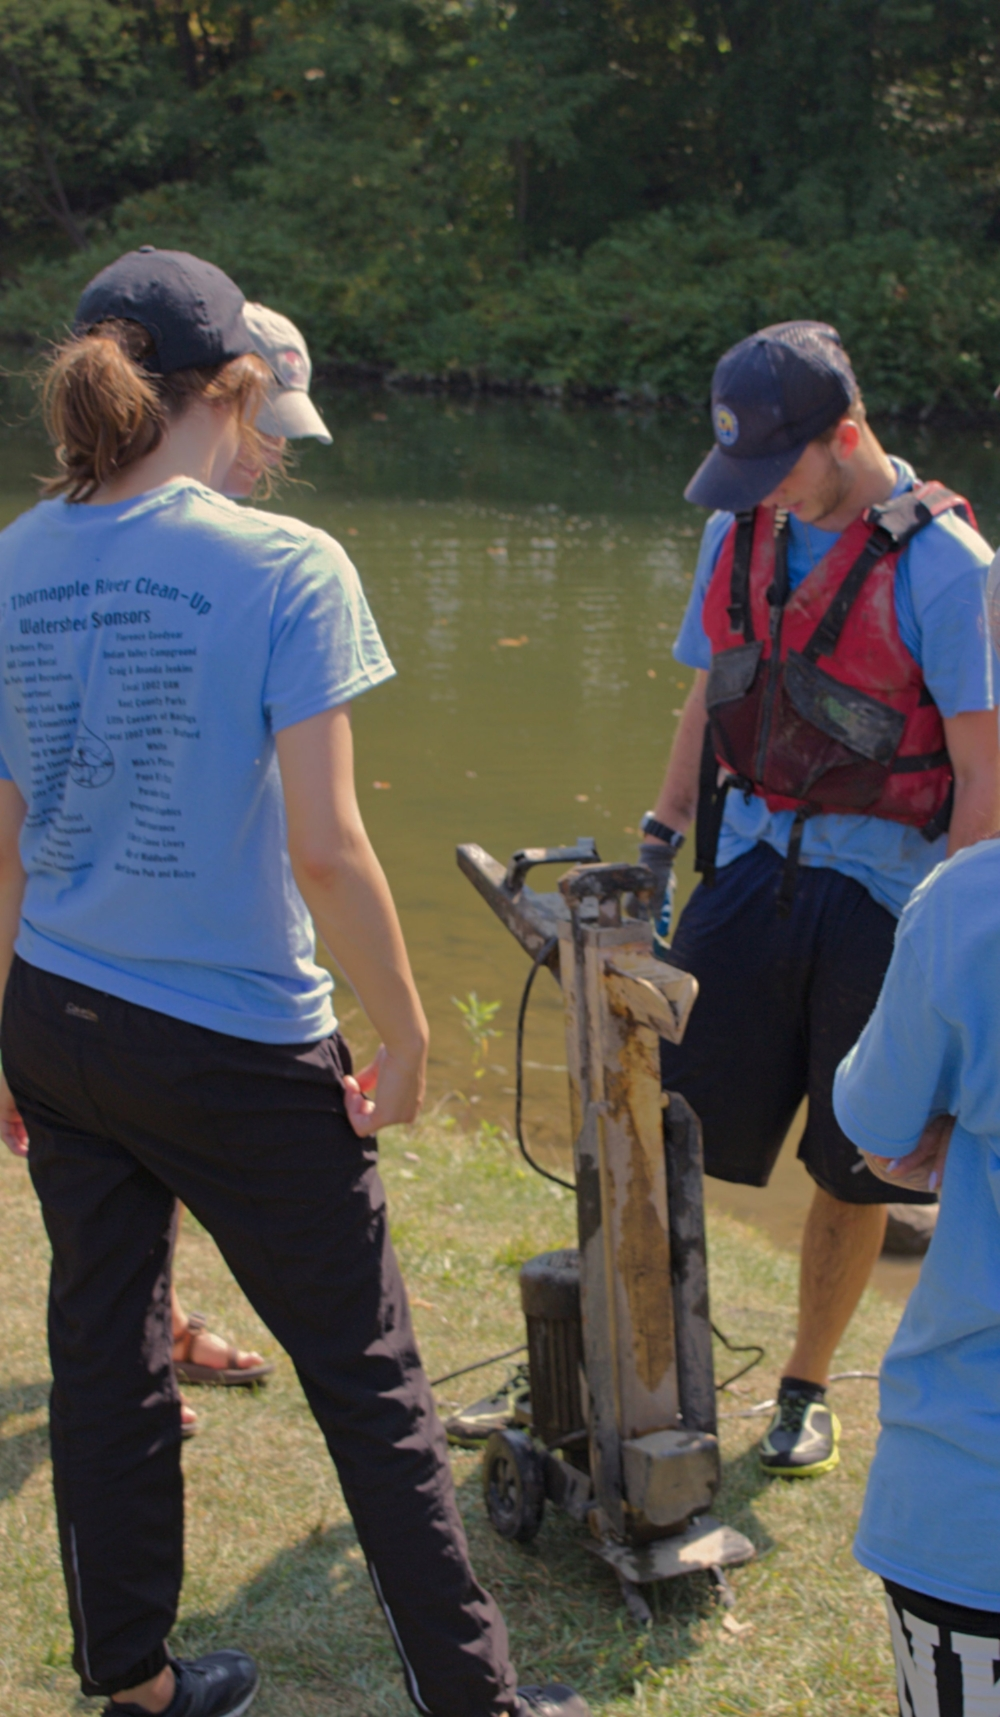 Silverhart(in red) looking at their other big find, an electric log-splitter. It was so heavy that he had to drag it down the riverbank to a place where Duarte, his canoe partner, could maneuver close to load it in underneath the car rooftop they had already recovered.